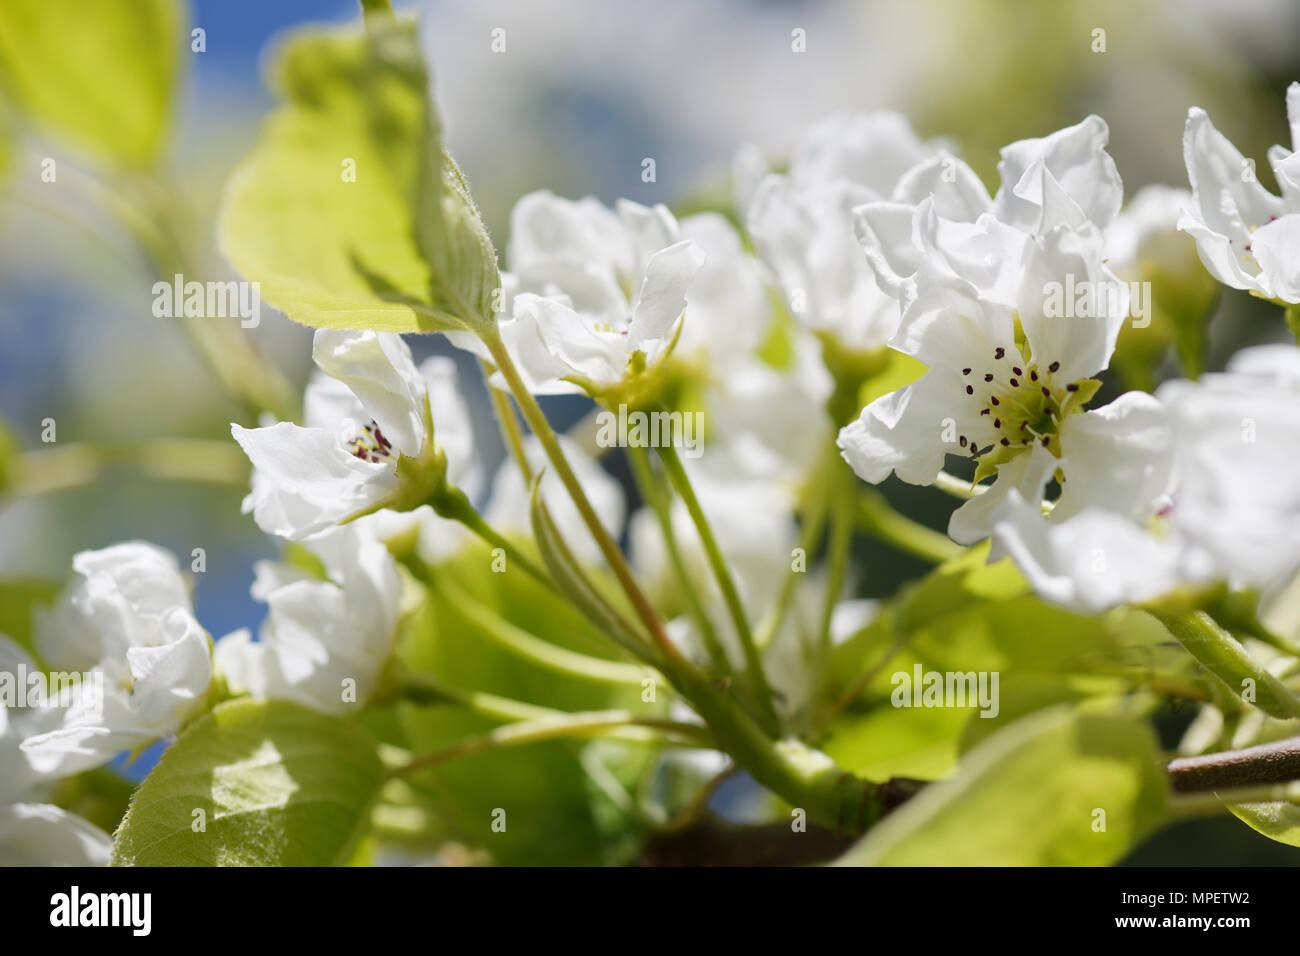 Closeup of Asian pear blossoms, Nashi pear, Pyrus pyrifolia, beautiful white flowers in sunlight Stock Photo